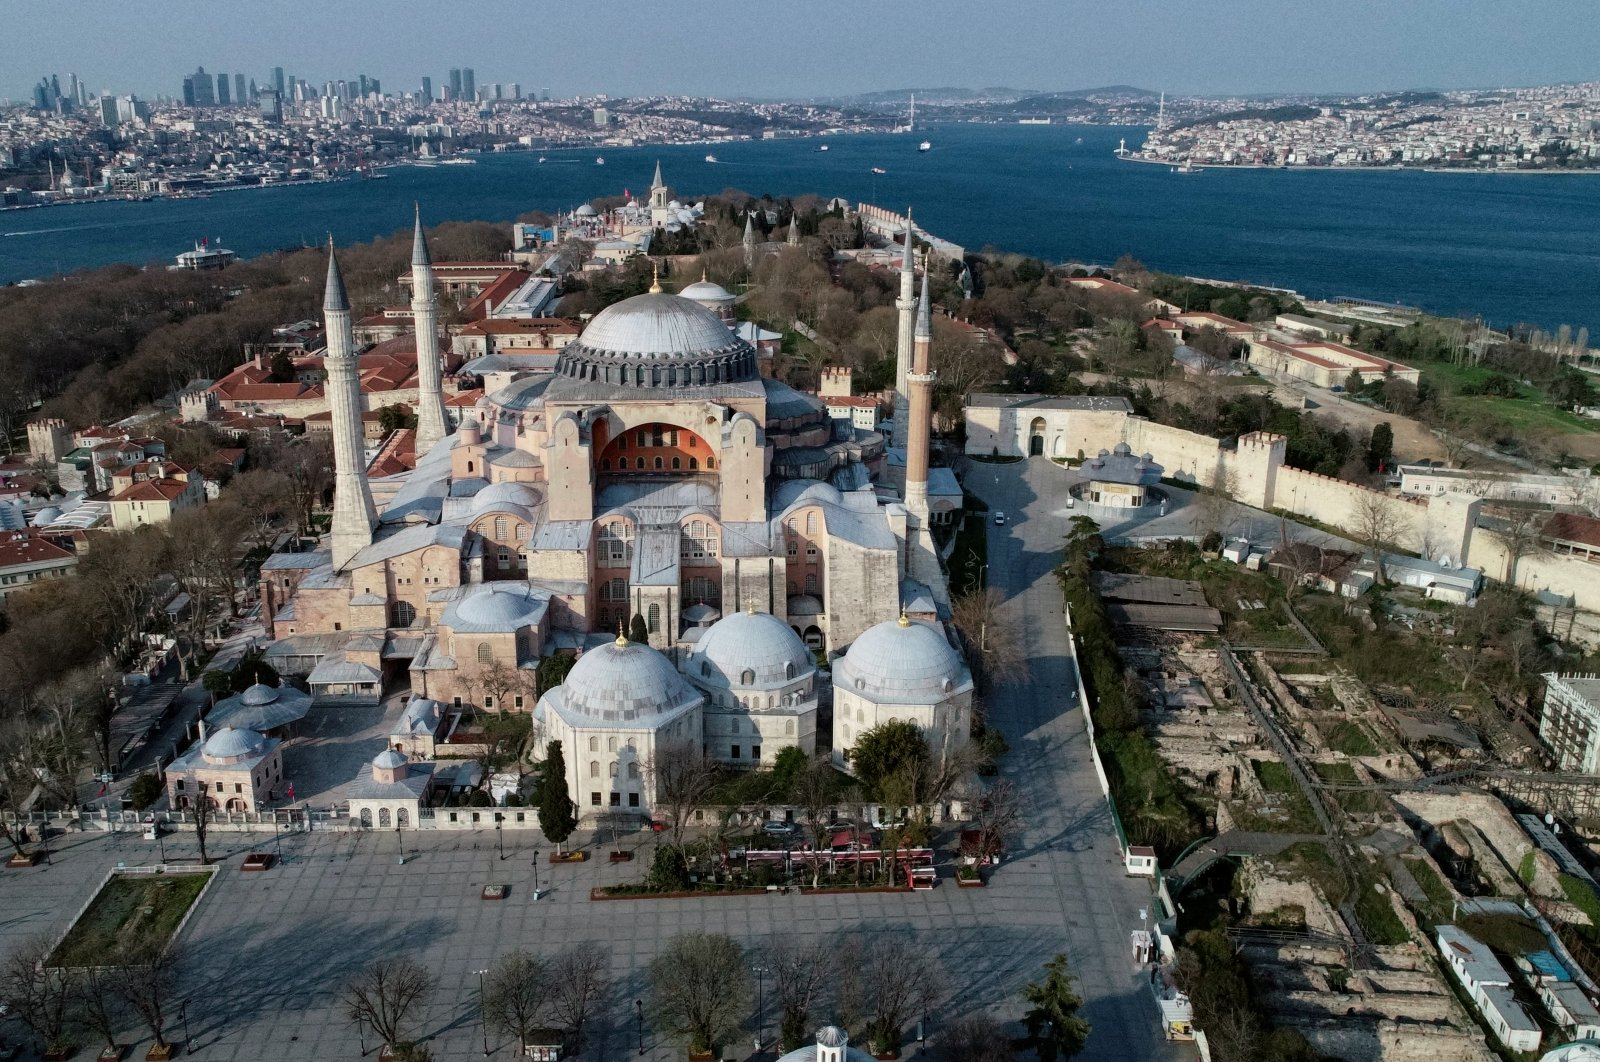 An aerial view of deserted streets around Hagia Sophia during a two-day curfew imposed to prevent the spread of the coronavirus, Istanbul, Turkey, April 11, 2020. (Reuters Photo)